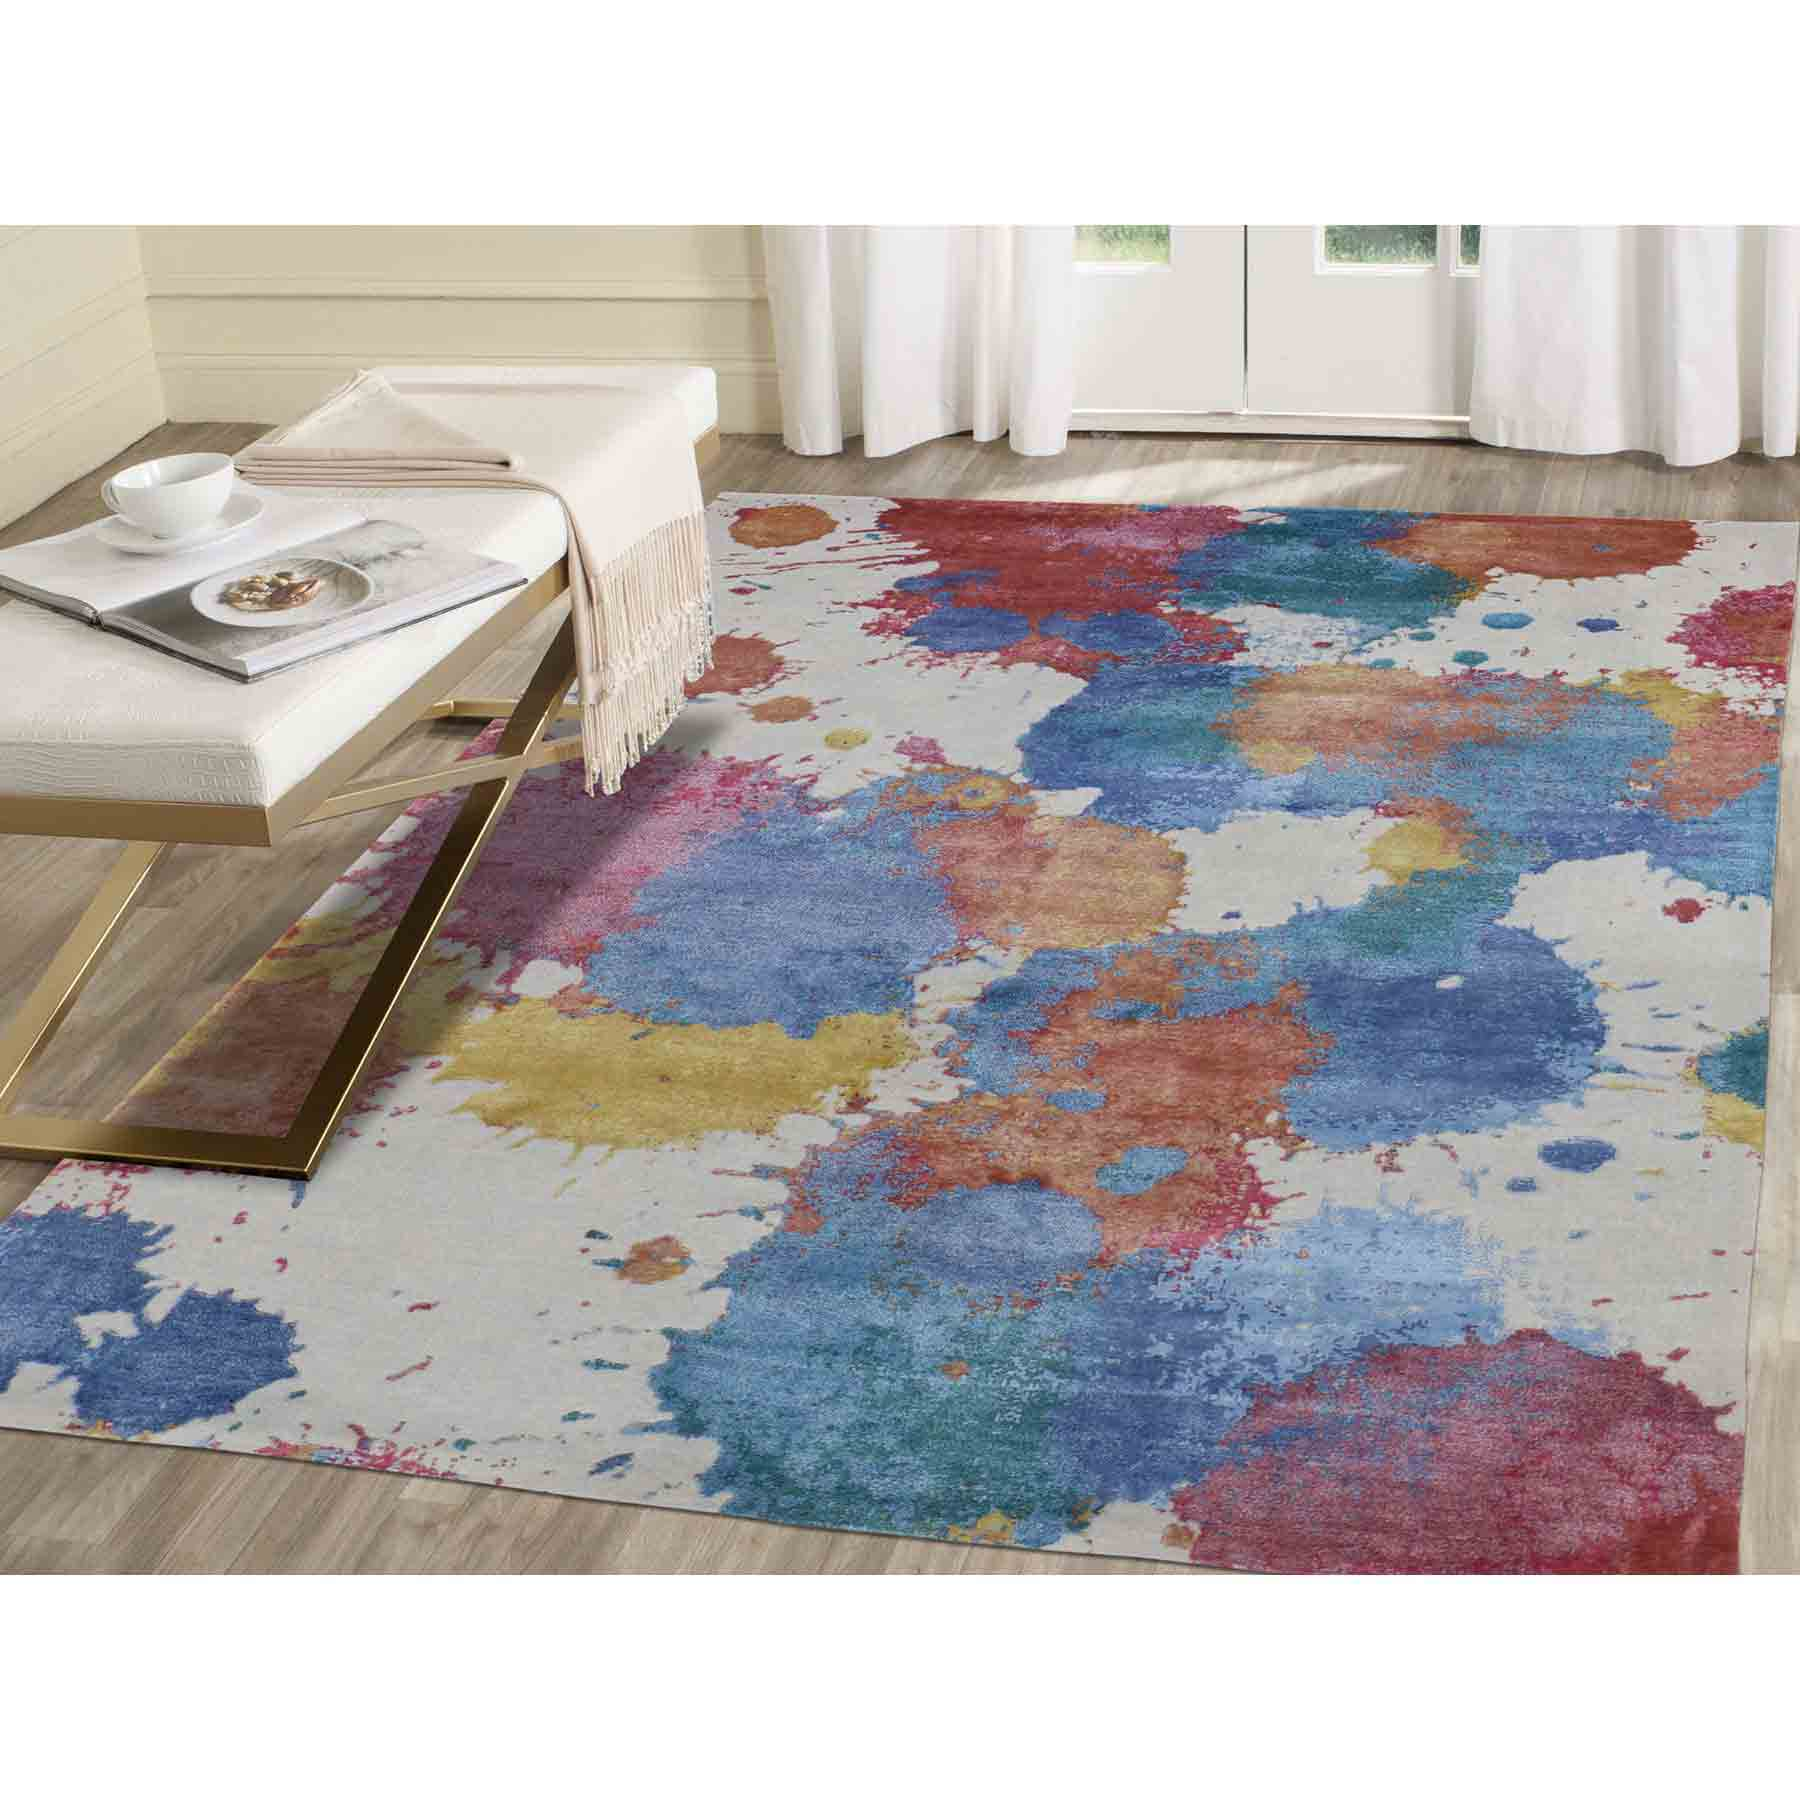 Modern-and-Contemporary-Hand-Knotted-Rug-232255